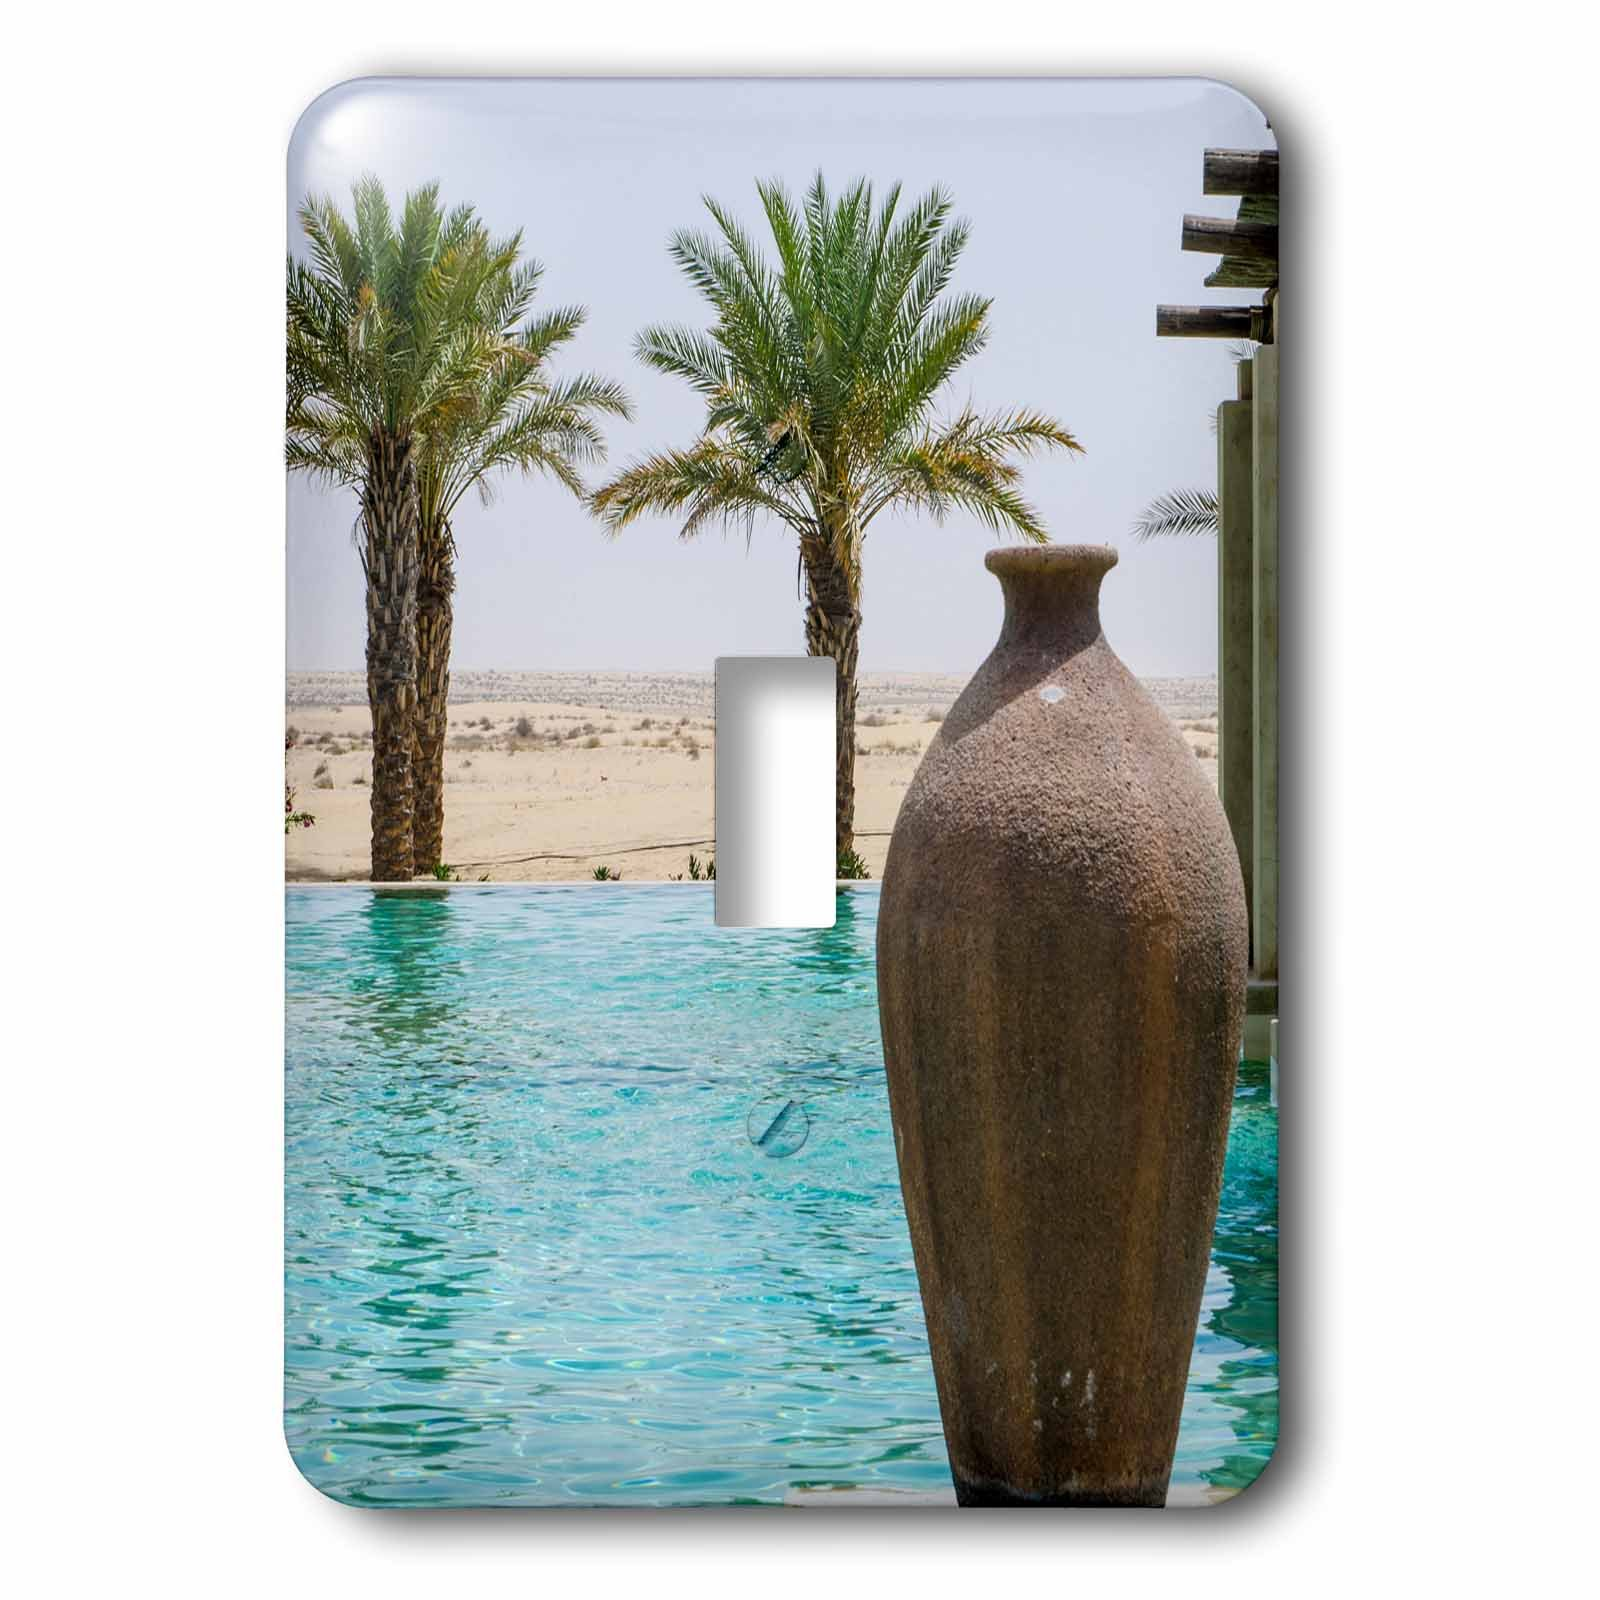 3dRose Danita Delimont - Pool - Pool area at a Resort and Spa. Dubai, UAE. - Light Switch Covers - single toggle switch (lsp_226129_1)